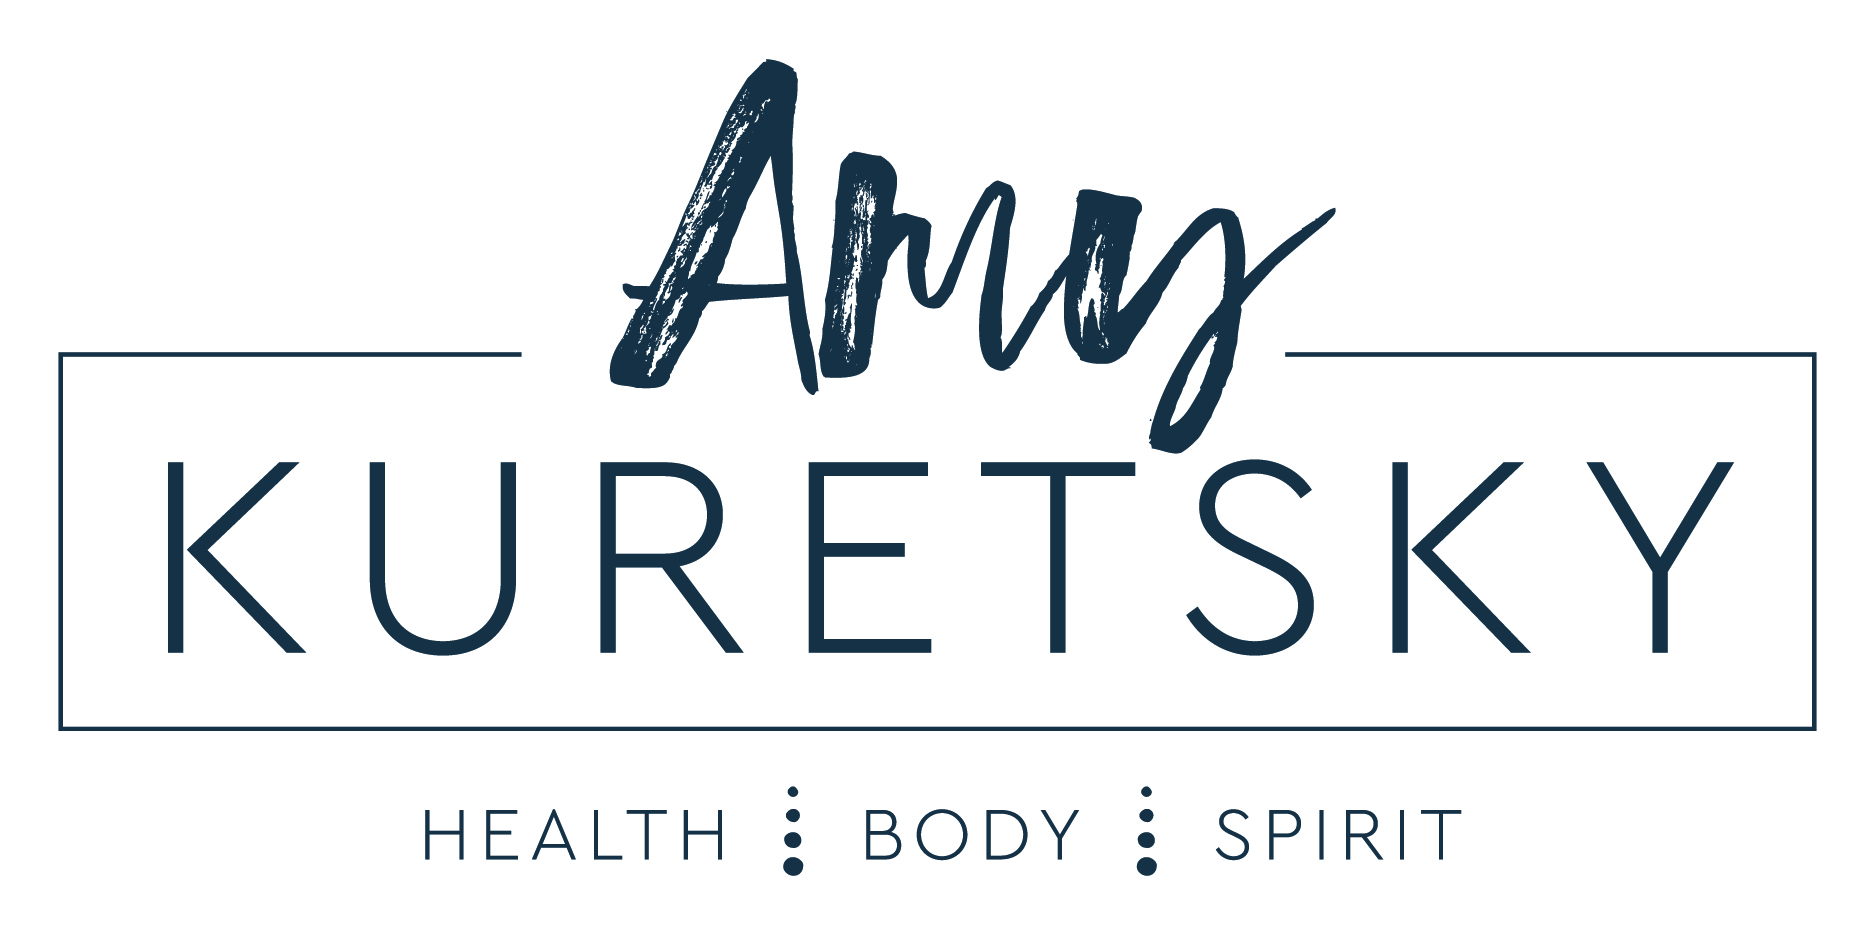 Silver Shade Group | Entrepreneur Spotlight on Amy Kuretsky